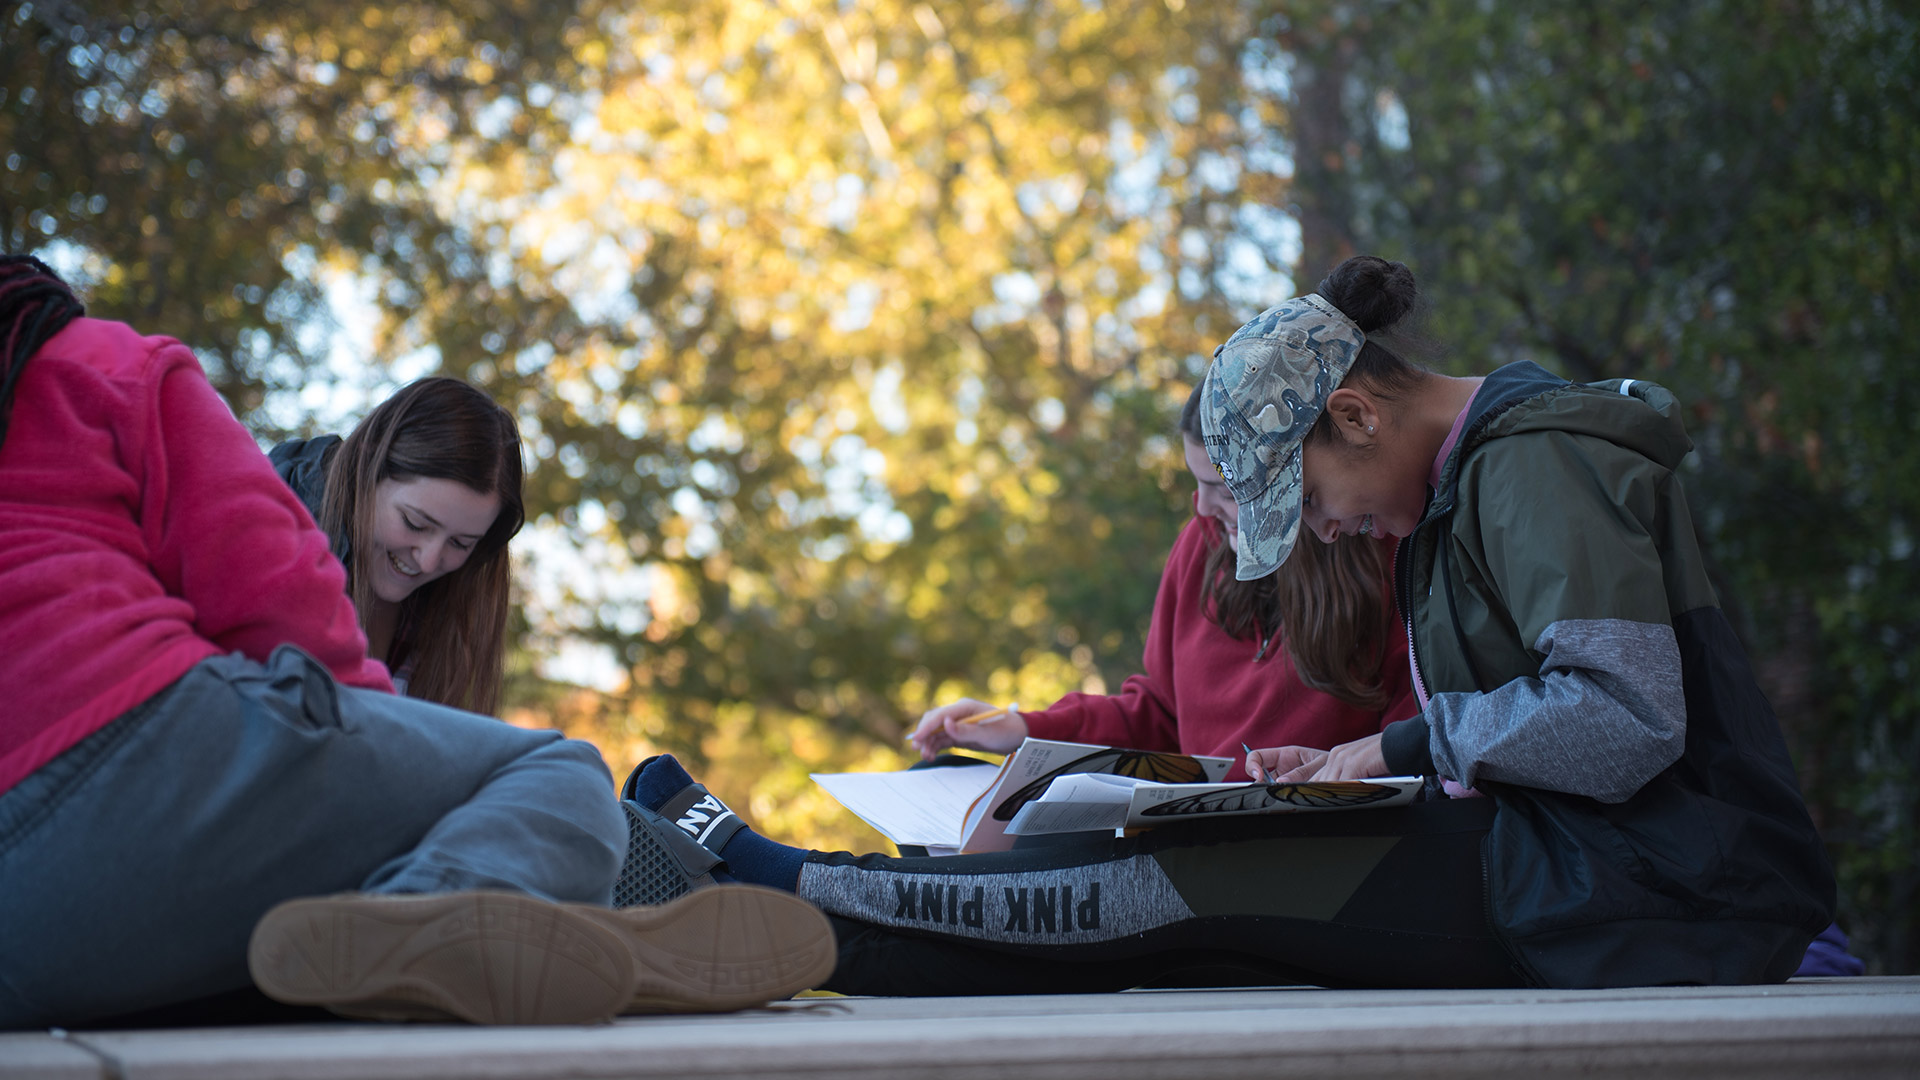 Story Image - Students in a group studying